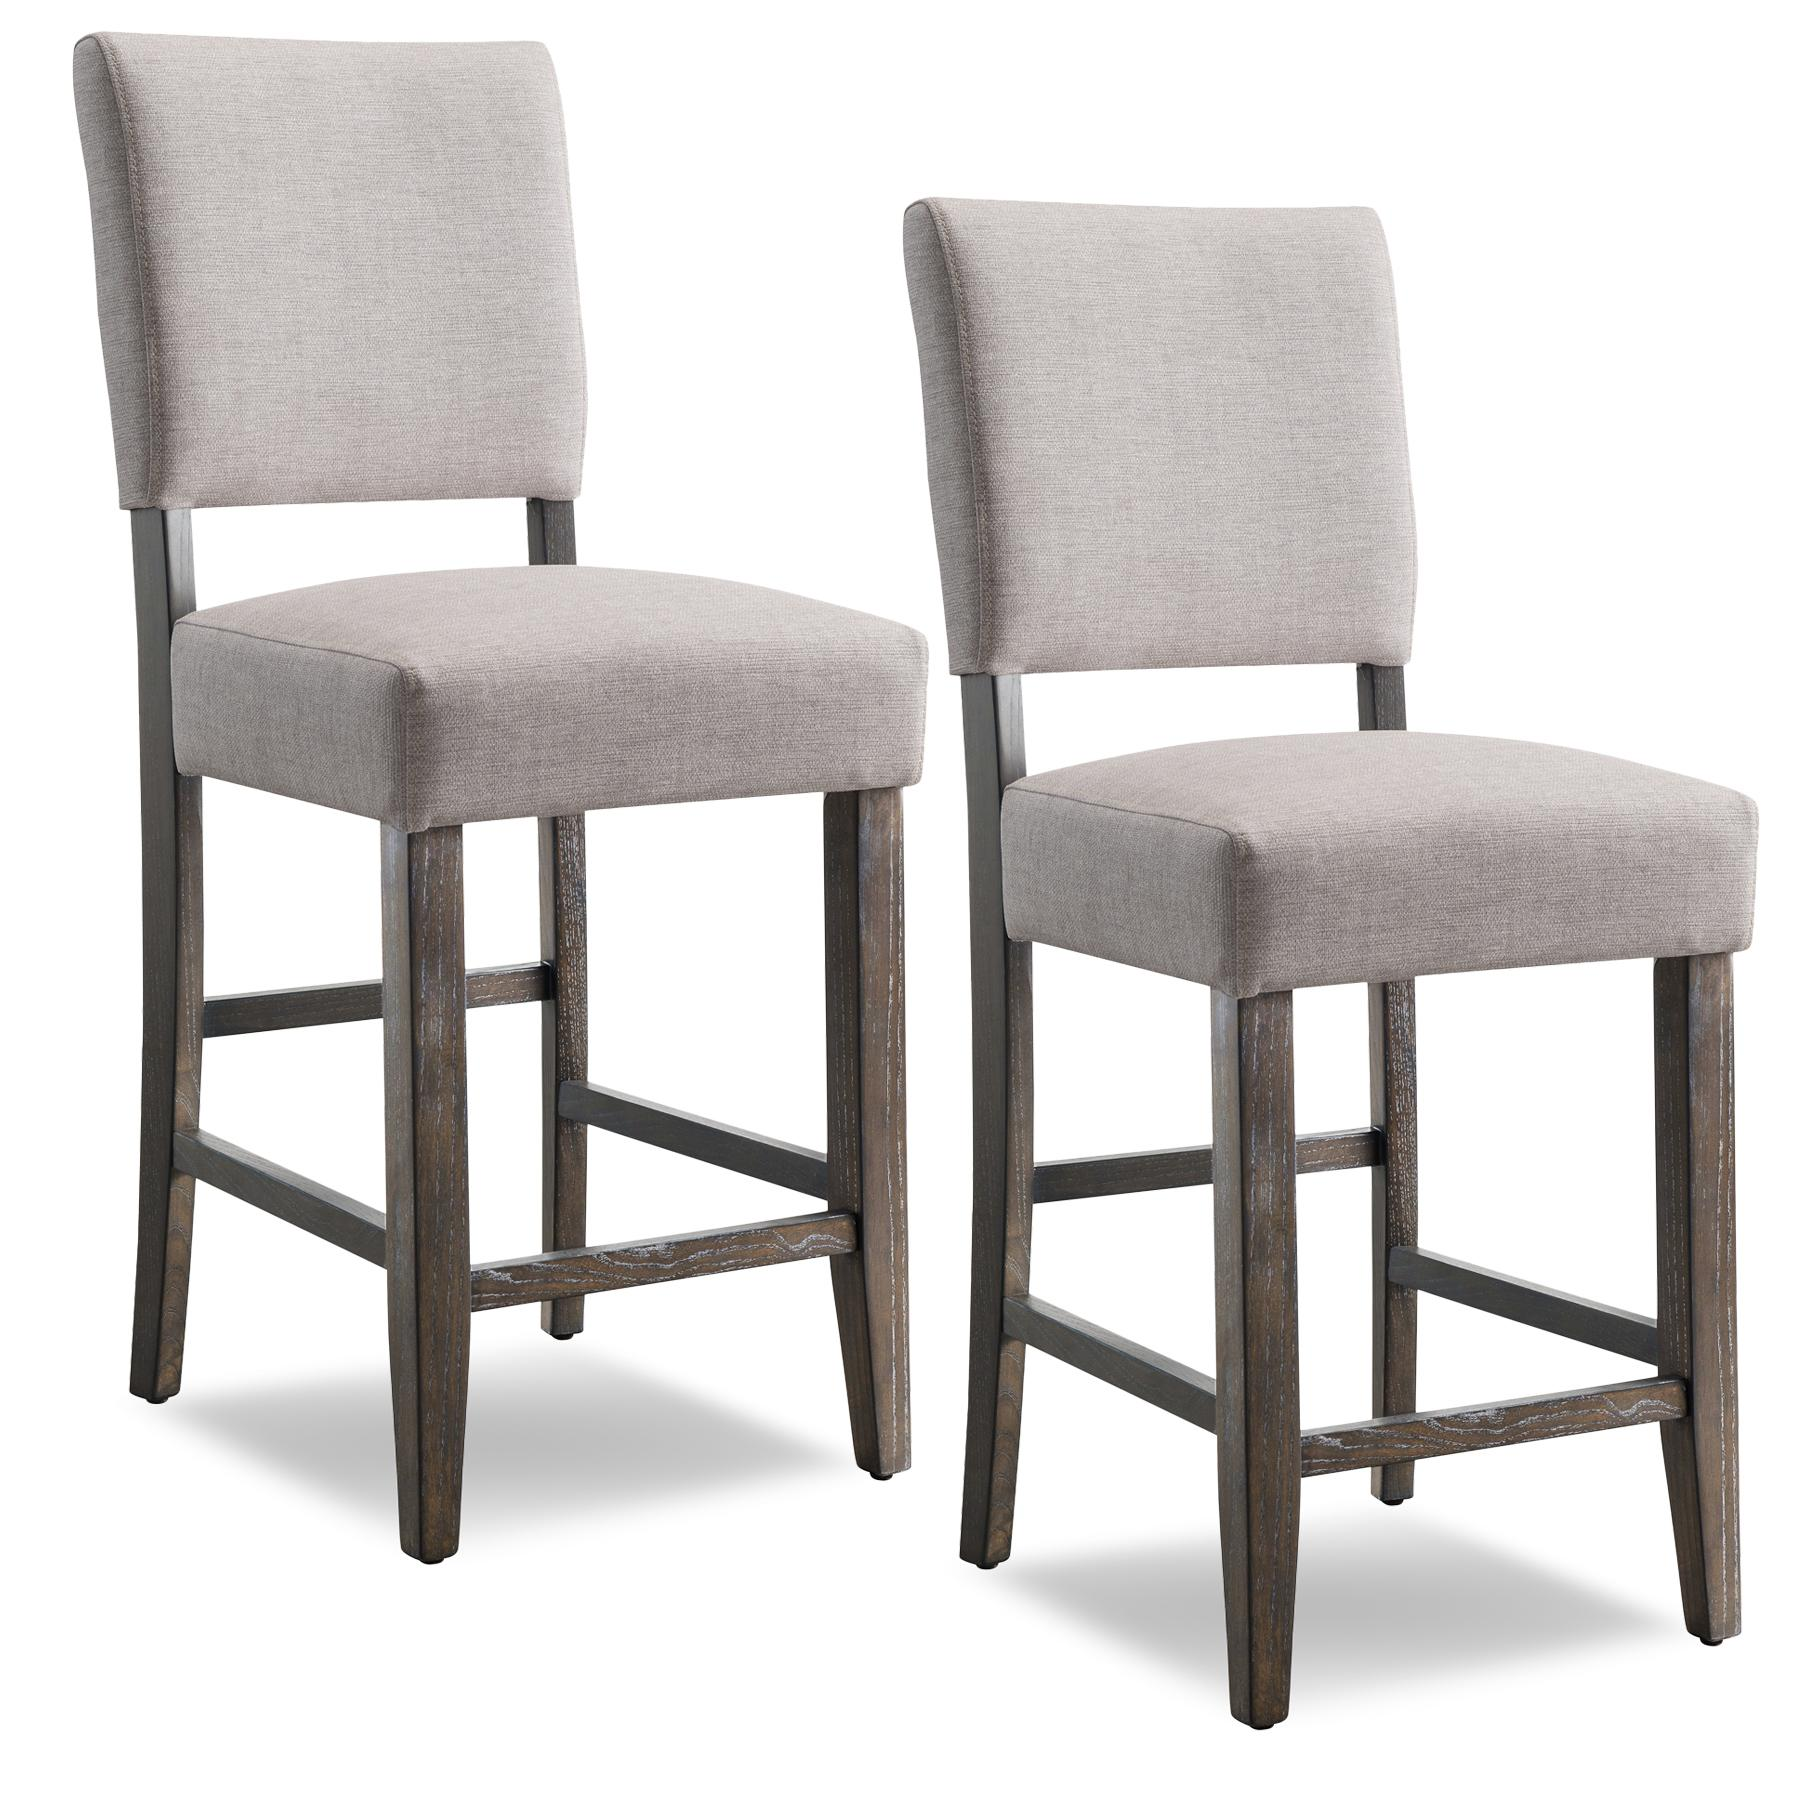 Leick 10086bb hg wood upholstered back counter height barstool heather grey seat set of 2 Home bar furniture amazon